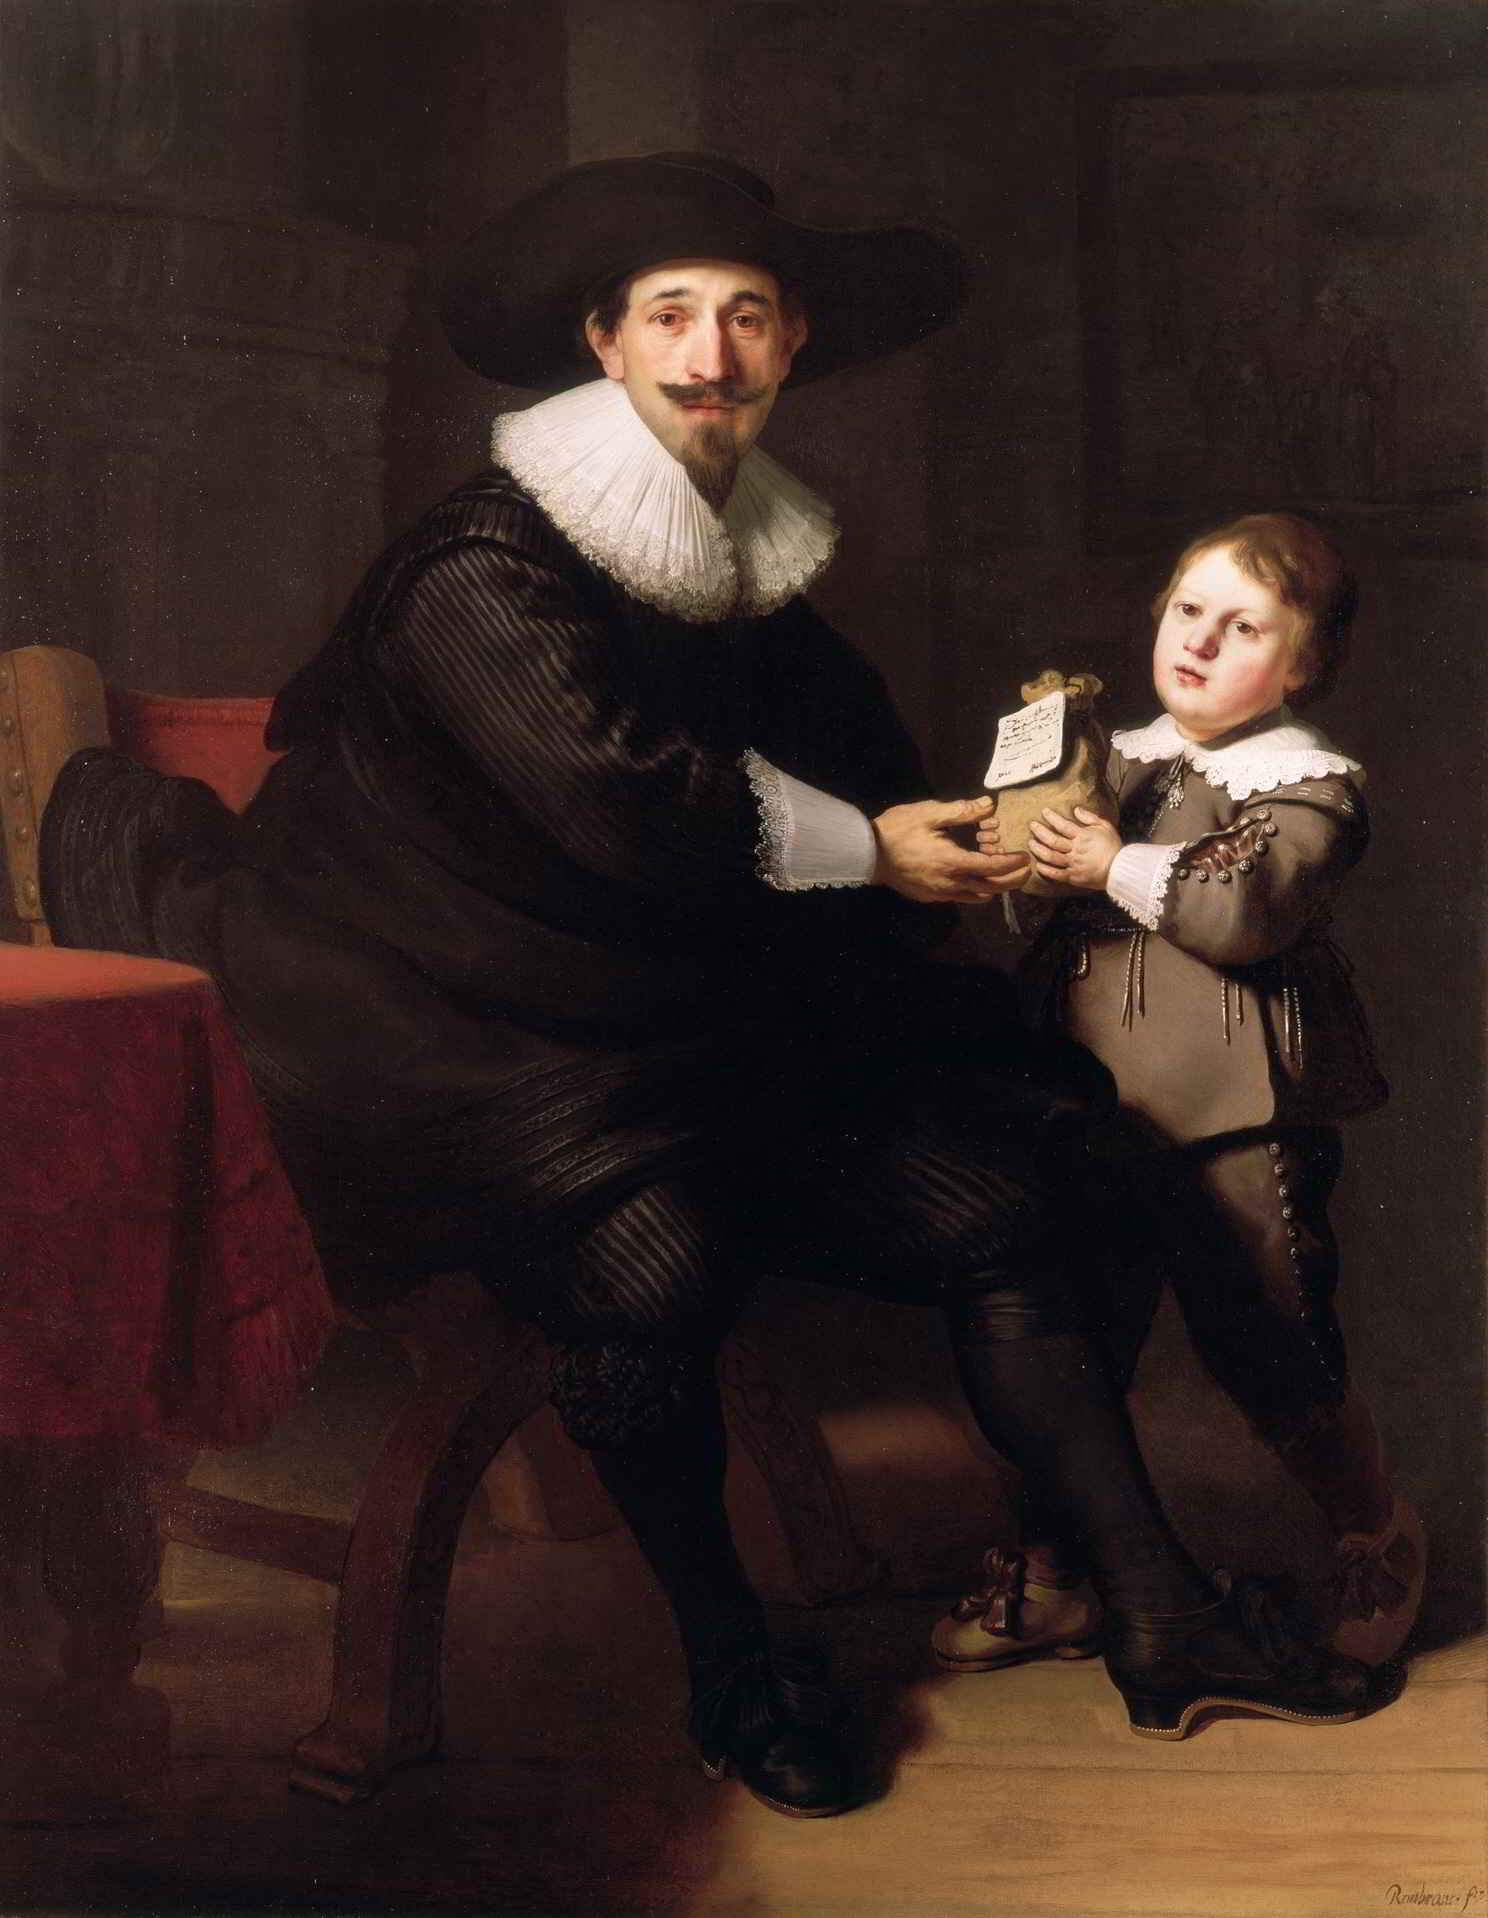 Rembrandt van Rijn (1606-1669) and workshop, <em>Jean Pellicome with his son Caspar</em>, ca. 1632 Wallace Collection, London